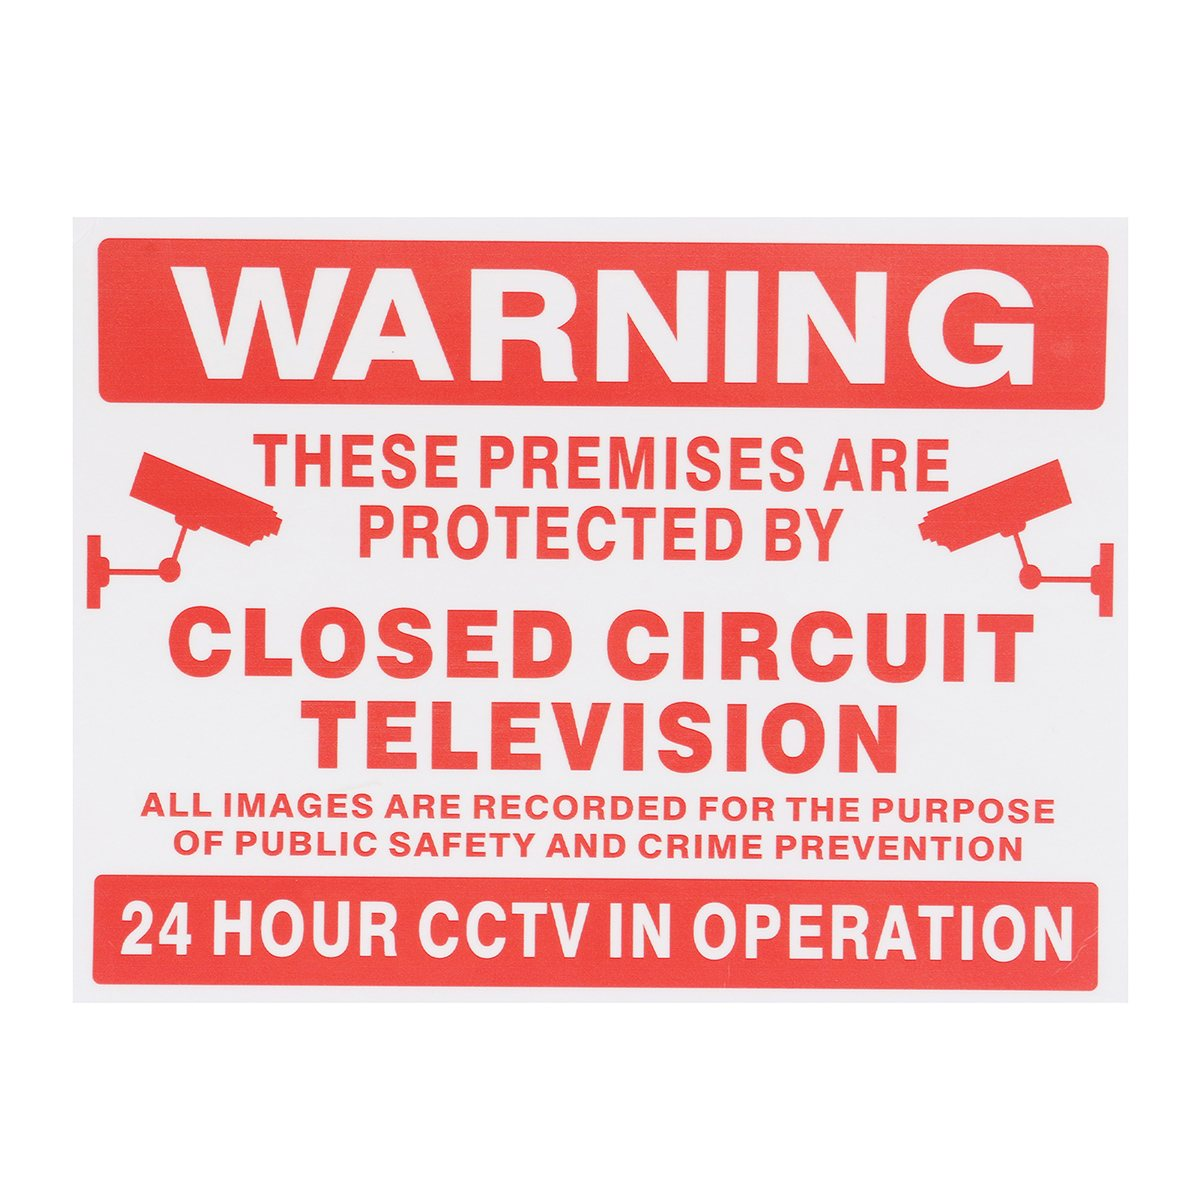 Safurance Premises Are Projected By Closed Circuit Television CCTV Signs Stickers Decal Home Security Warning signs